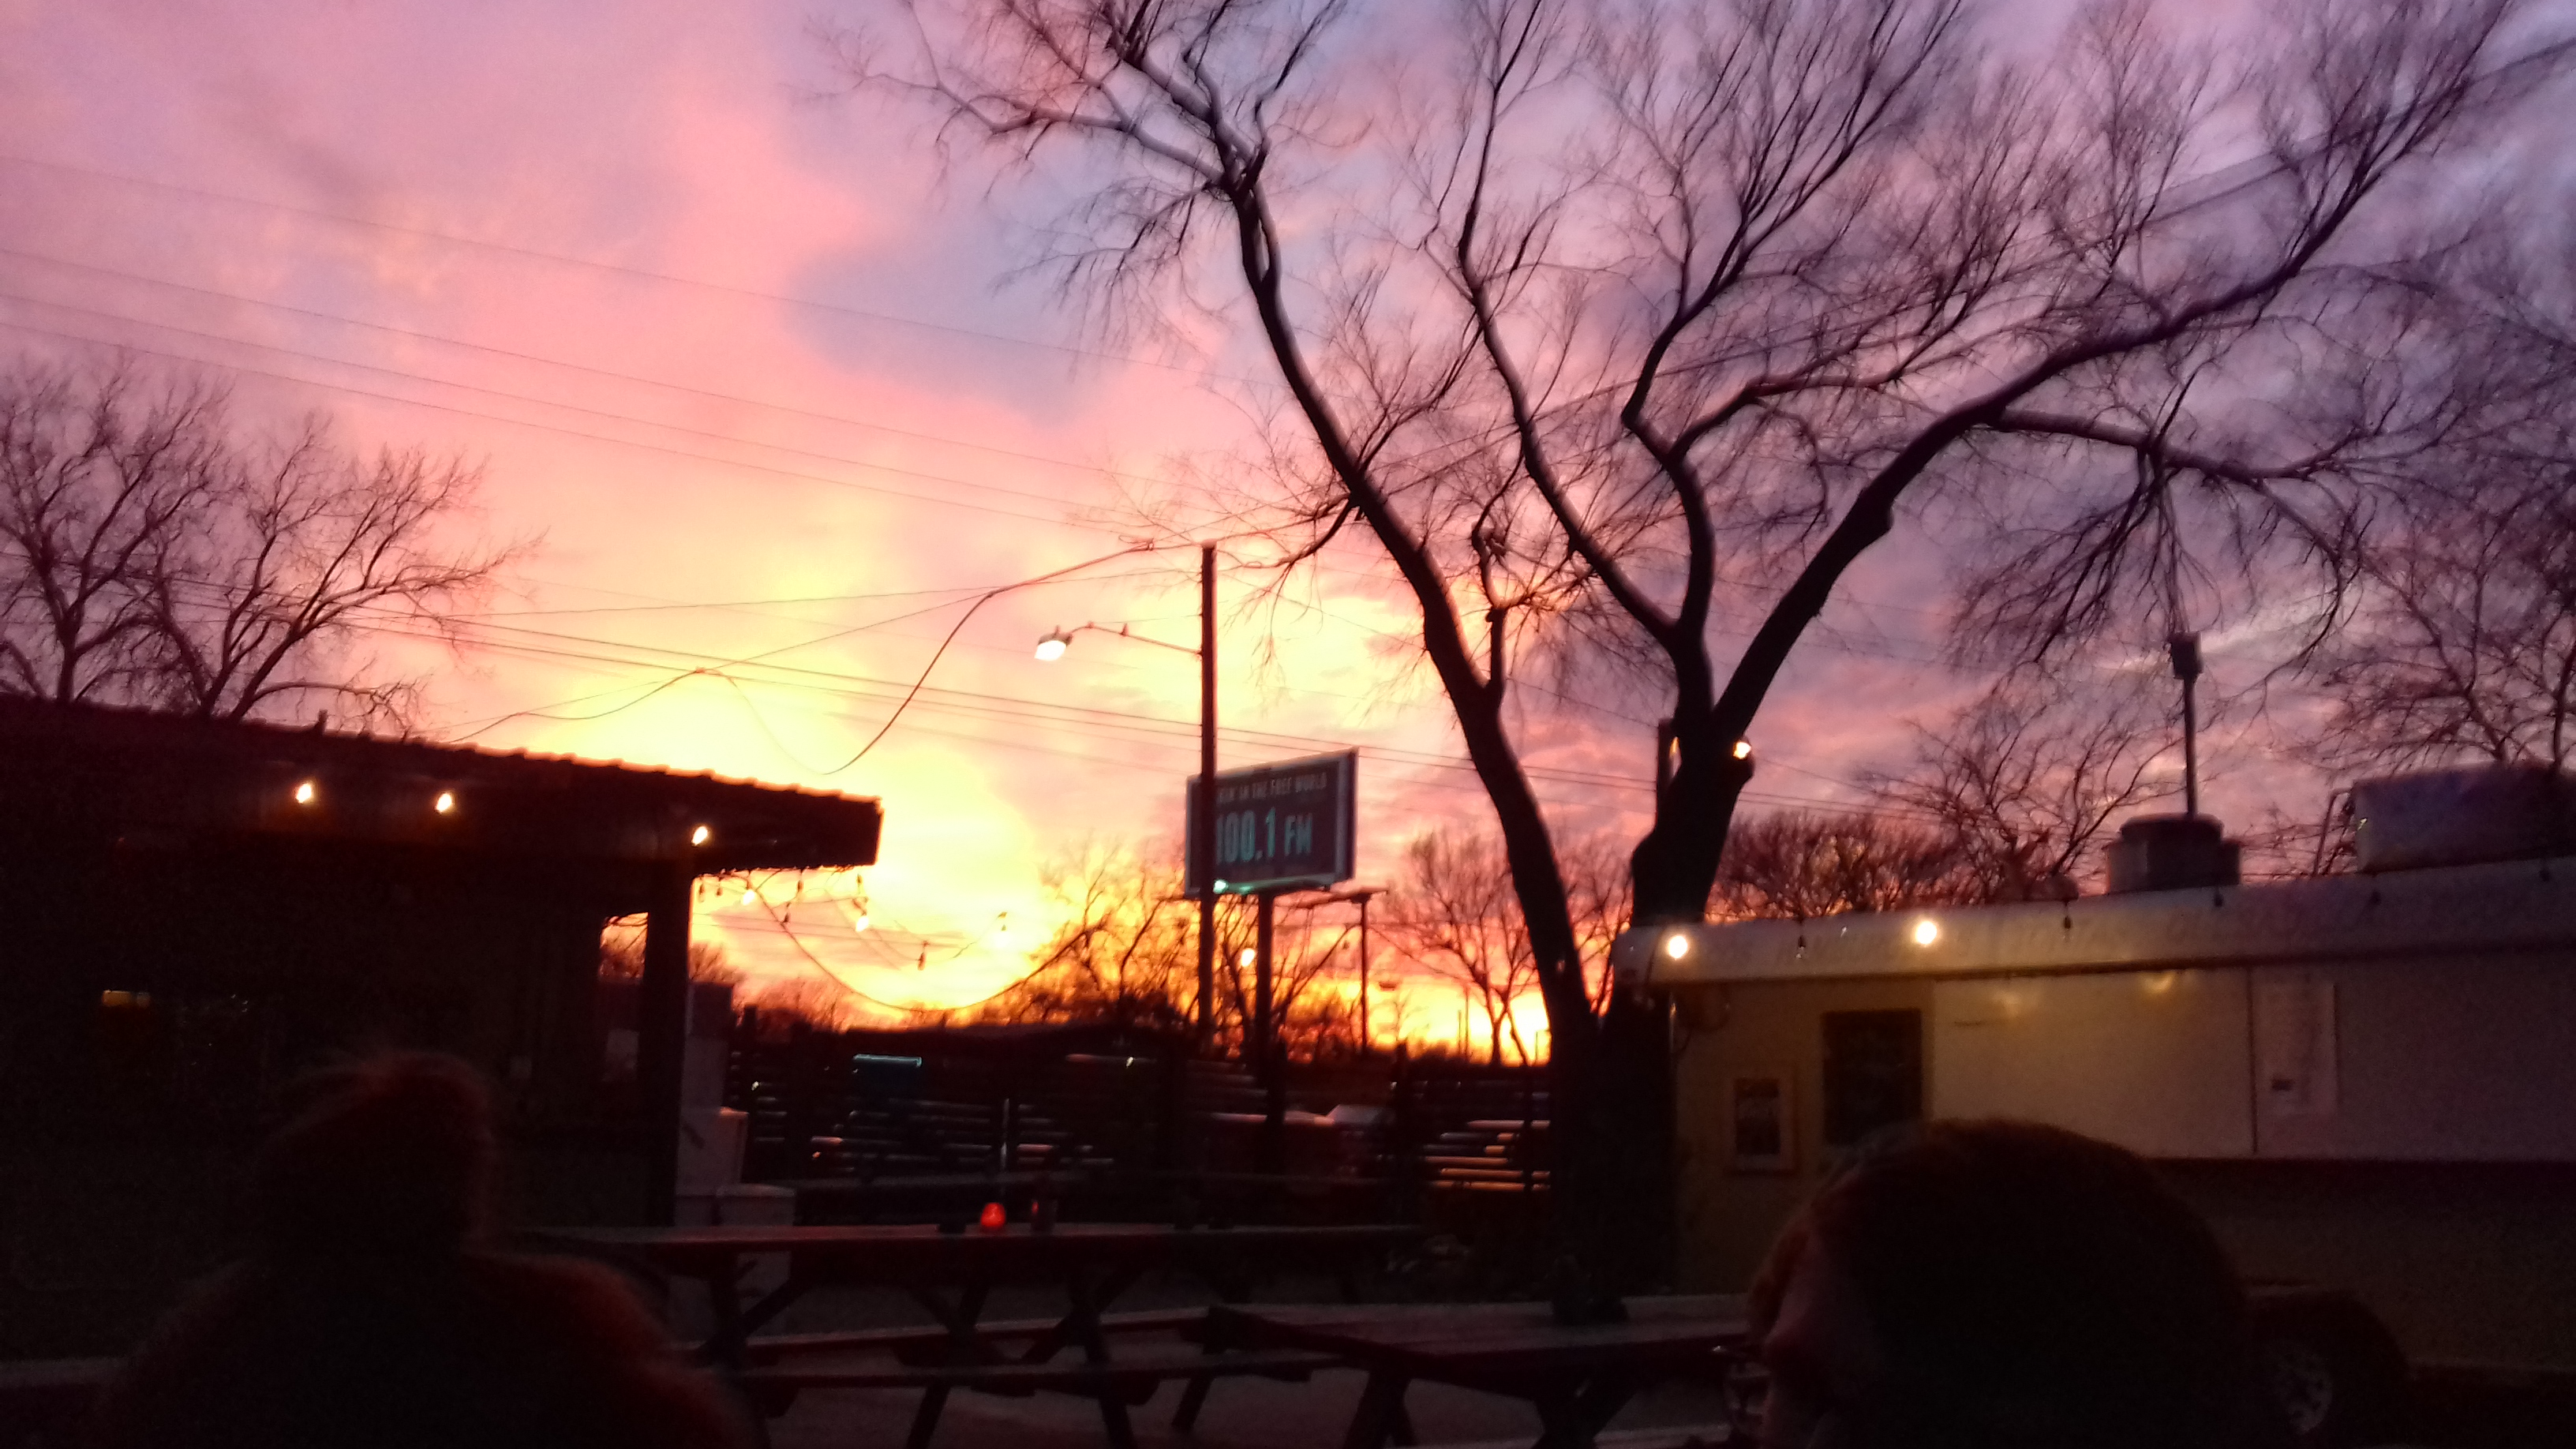 Sunset from a dive bar